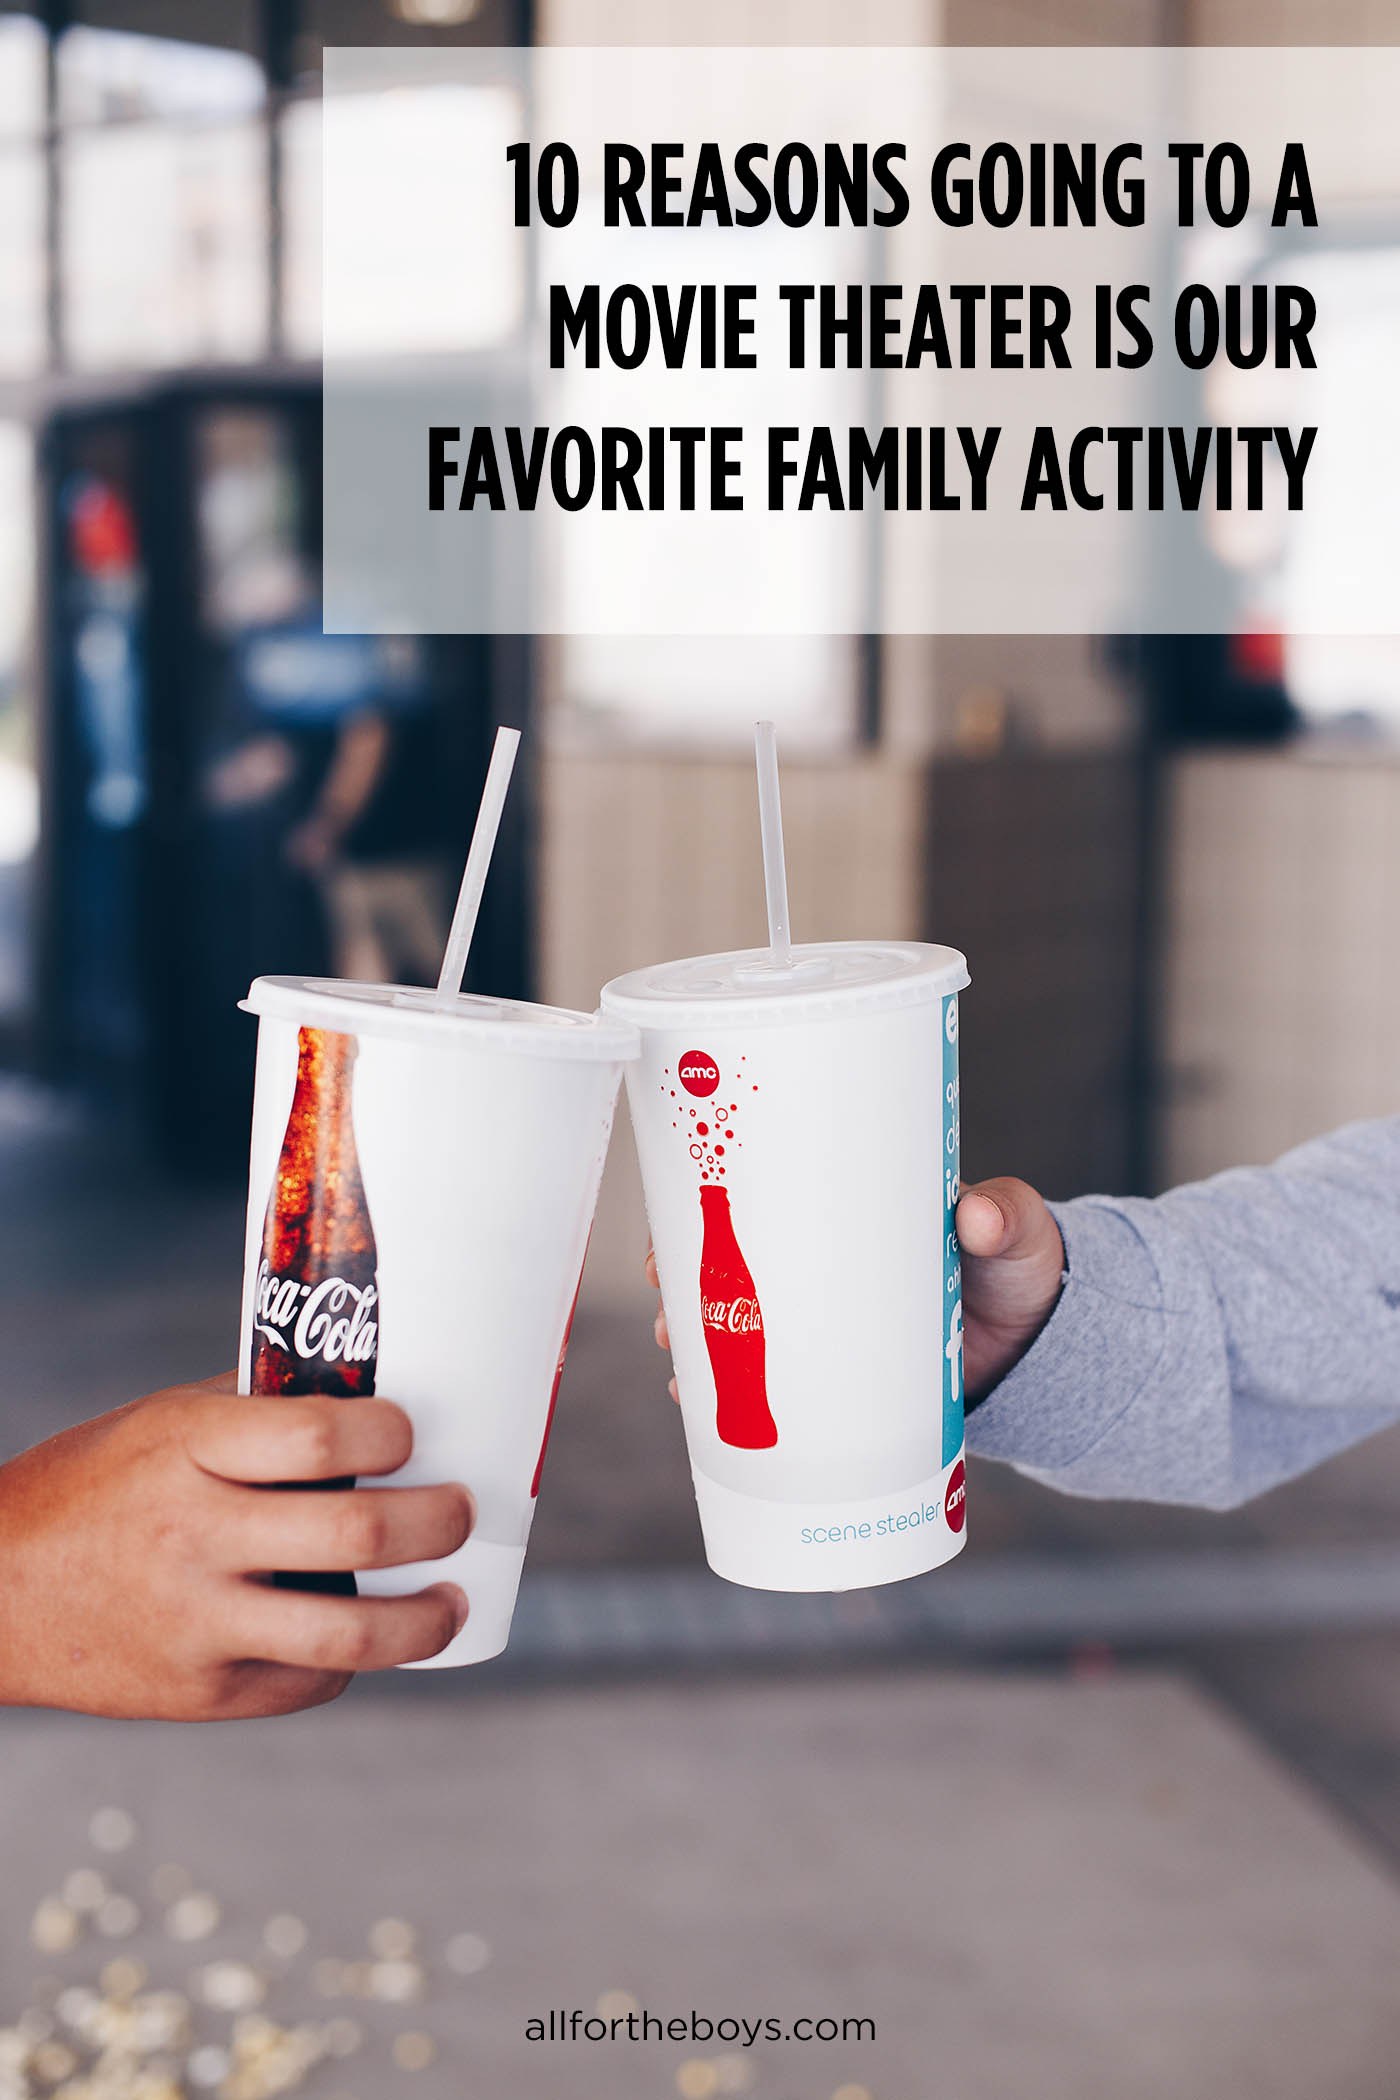 10 reasons going to a movie theater is our favorite family activity